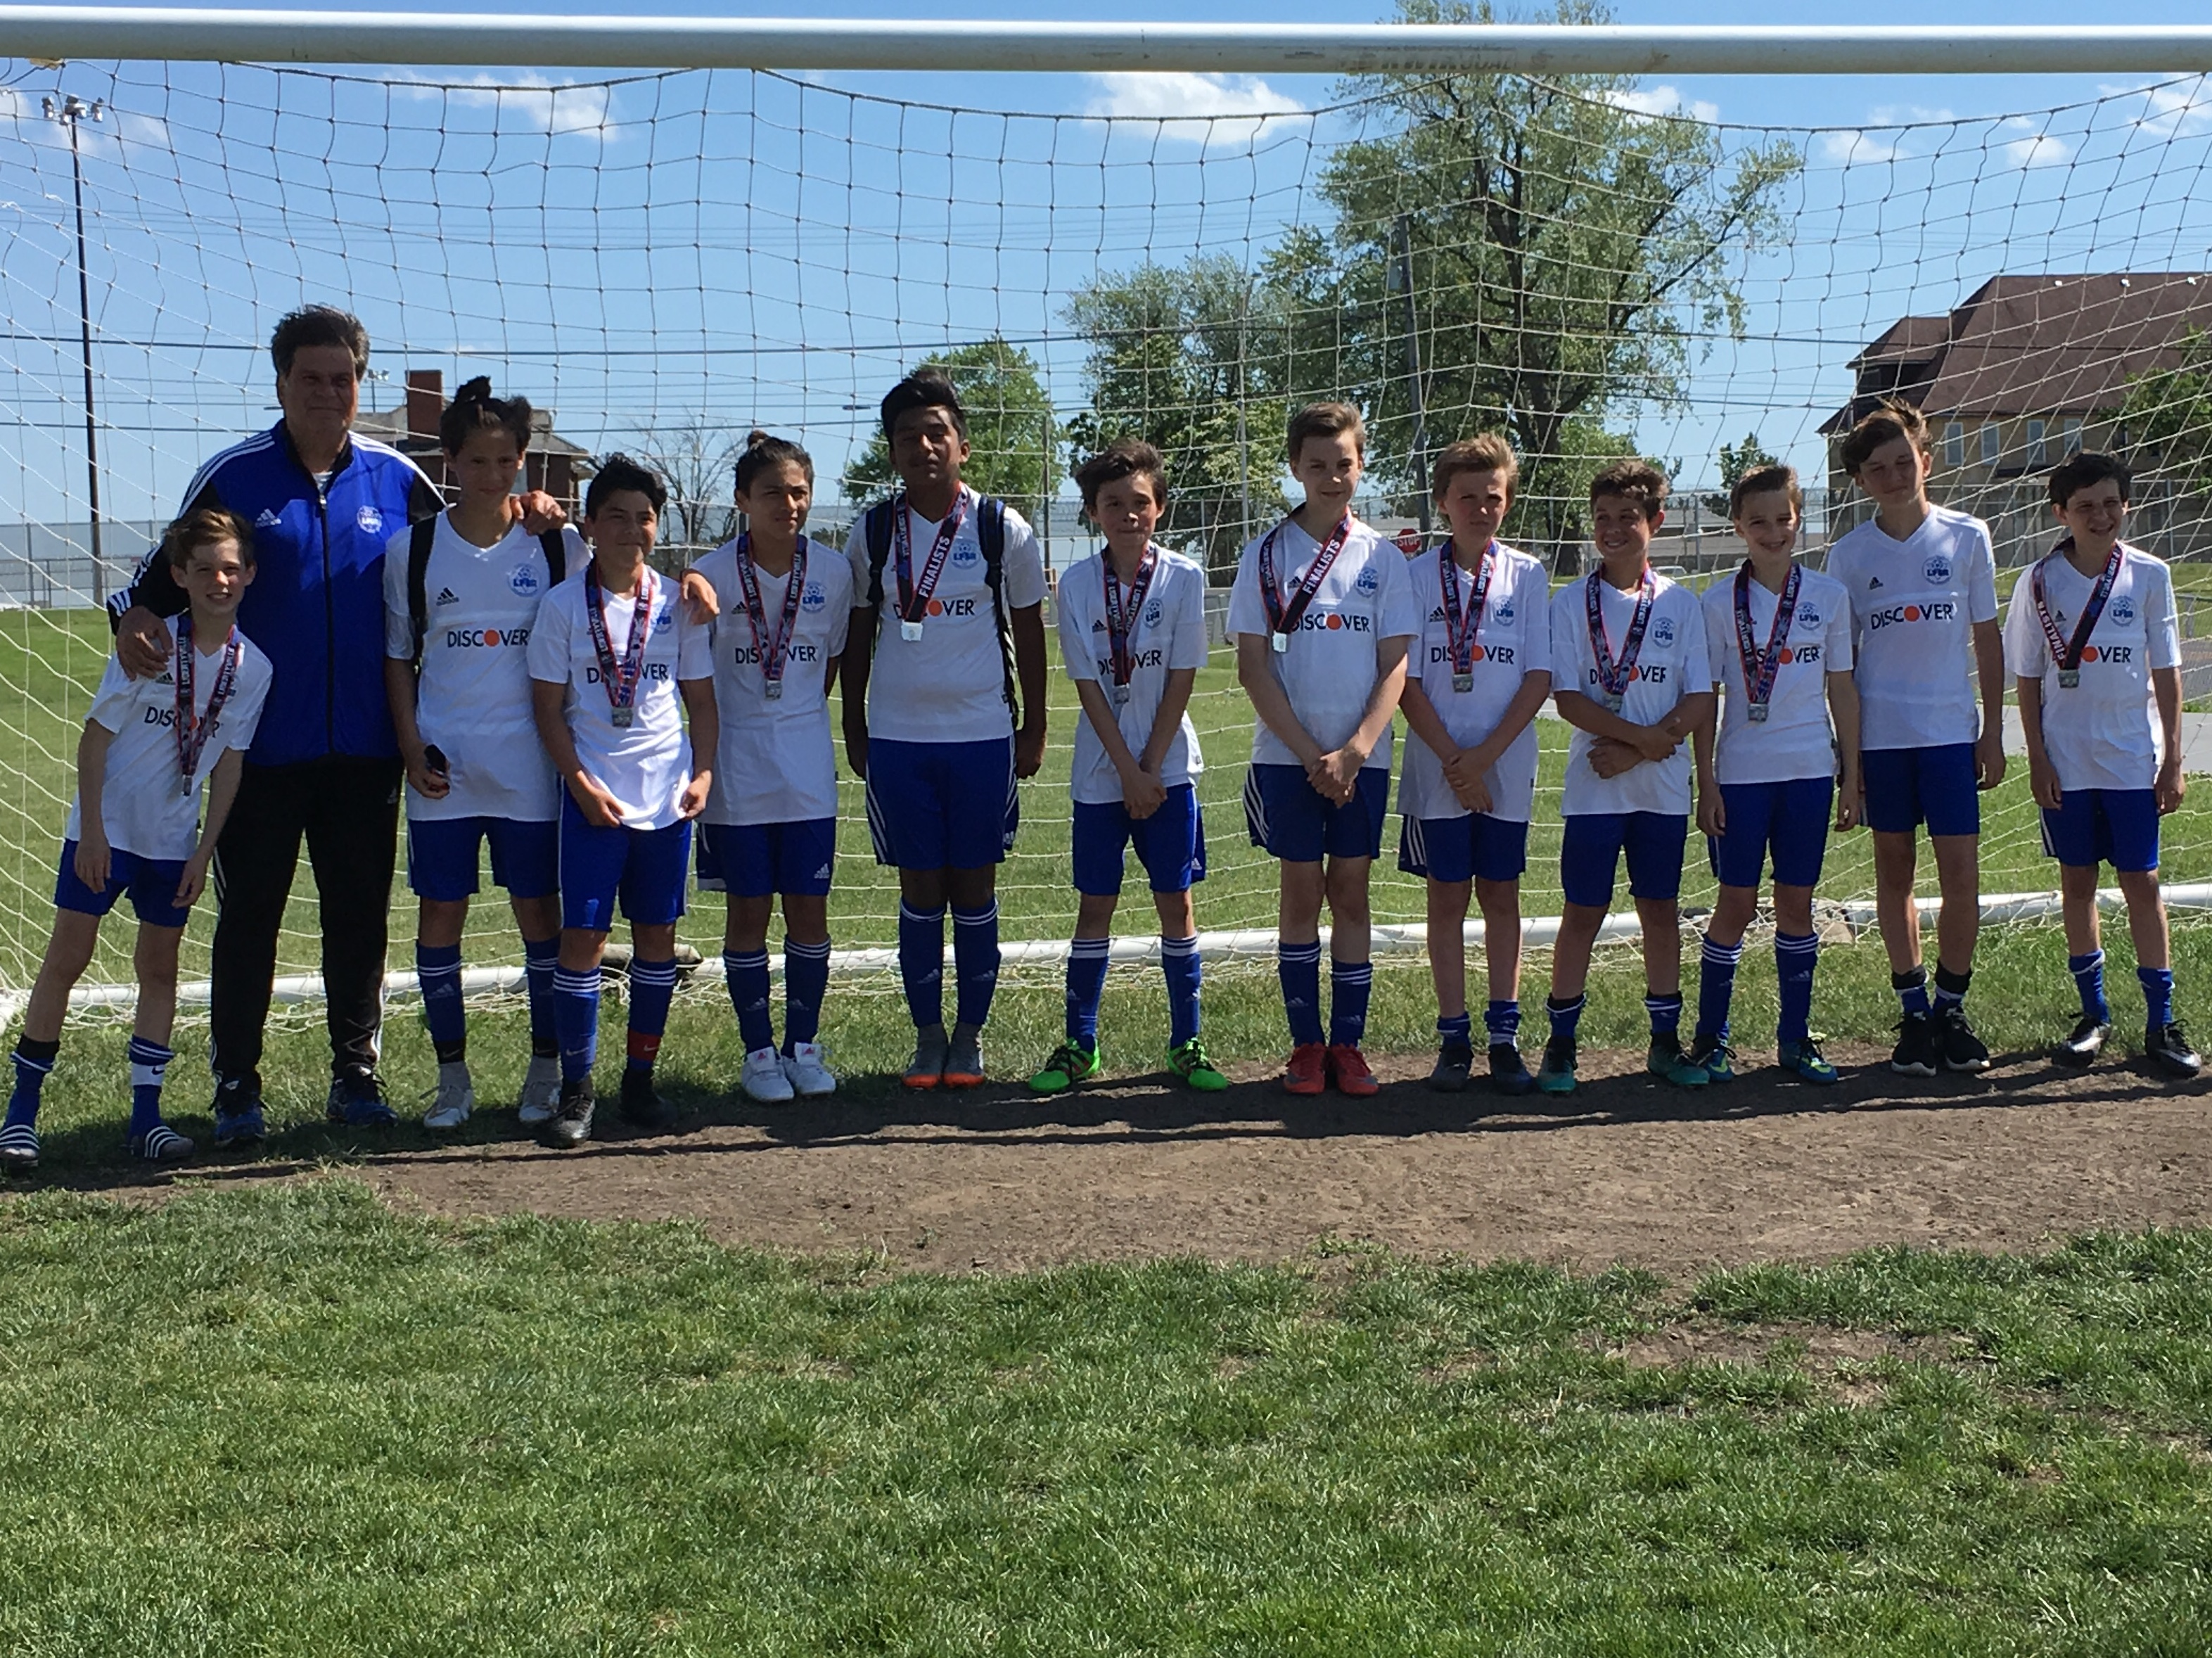 Boys U13 Select 1 takes 2nd place at the Libertyville Cup Tournament Champions Division